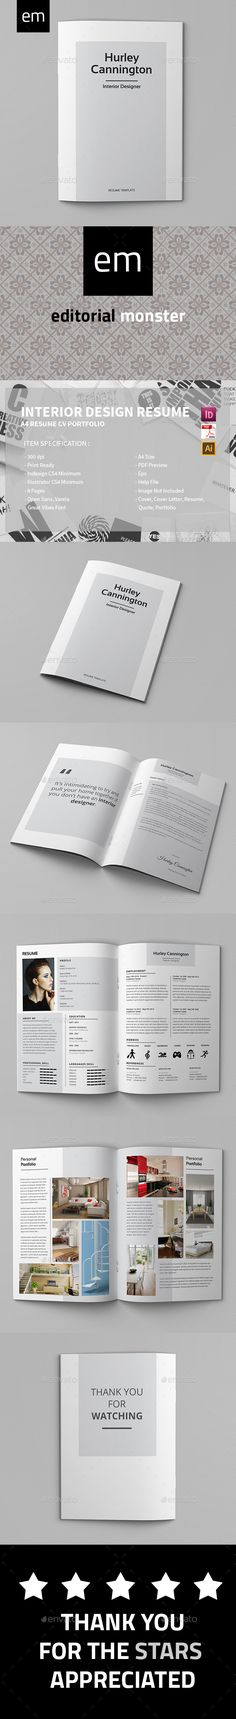 Claire Callis \/\/ Interior Design Resume Design Pinterest - resume for interior designer